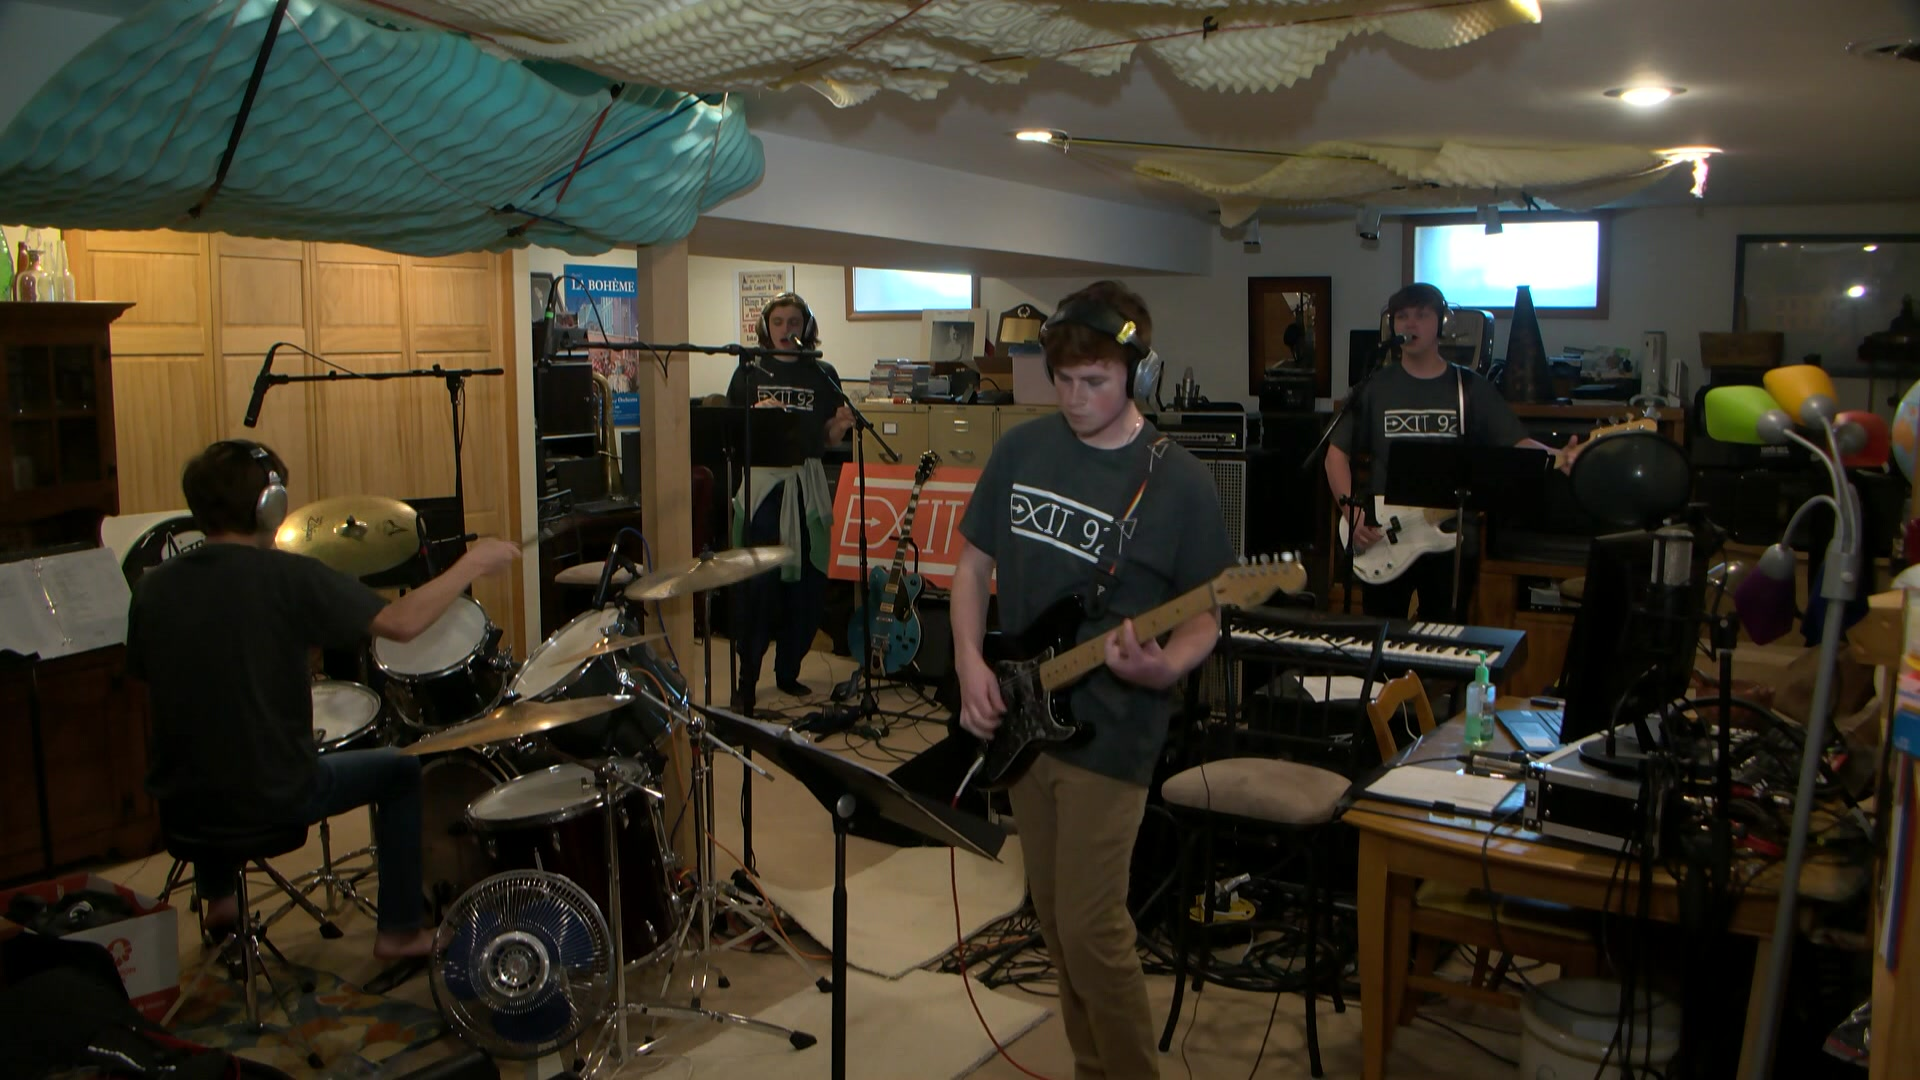 The four Grafton HS seniors of the band Exit 92 rehearse. by